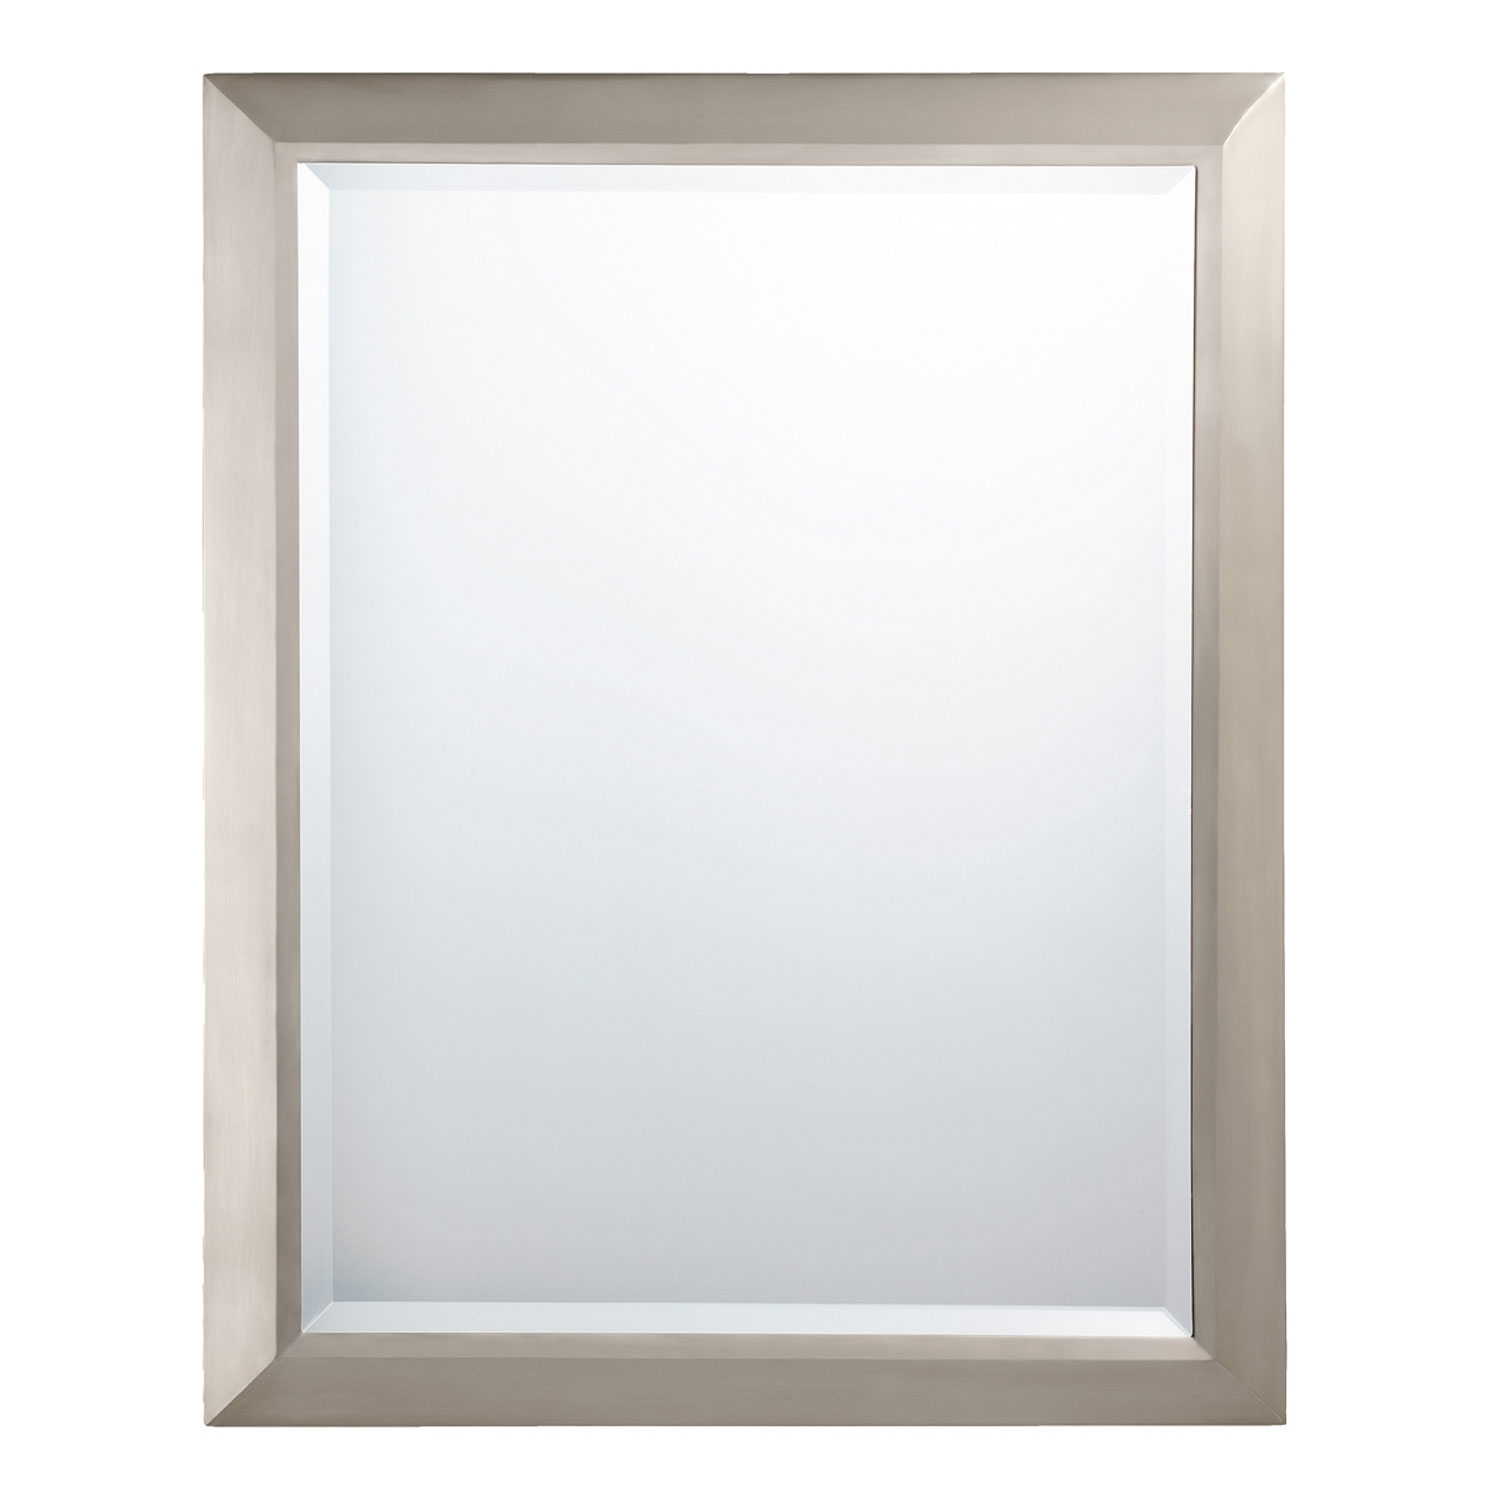 30 X 36 Framed Bathroom Mirror1500 X 1500